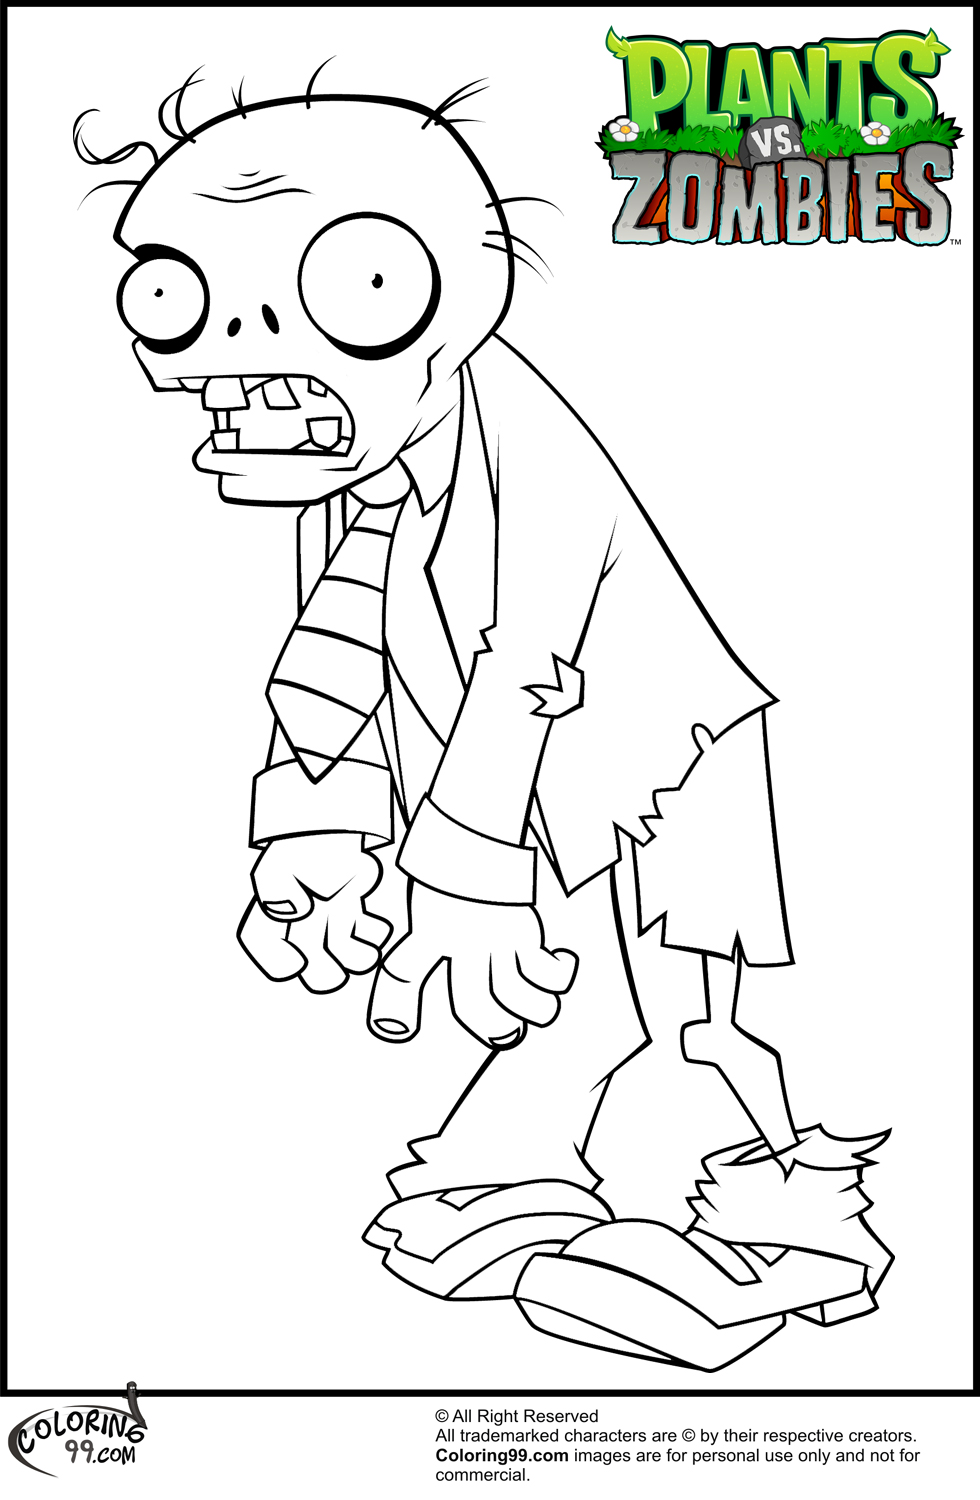 Free coloring pages of plants vs. zombies